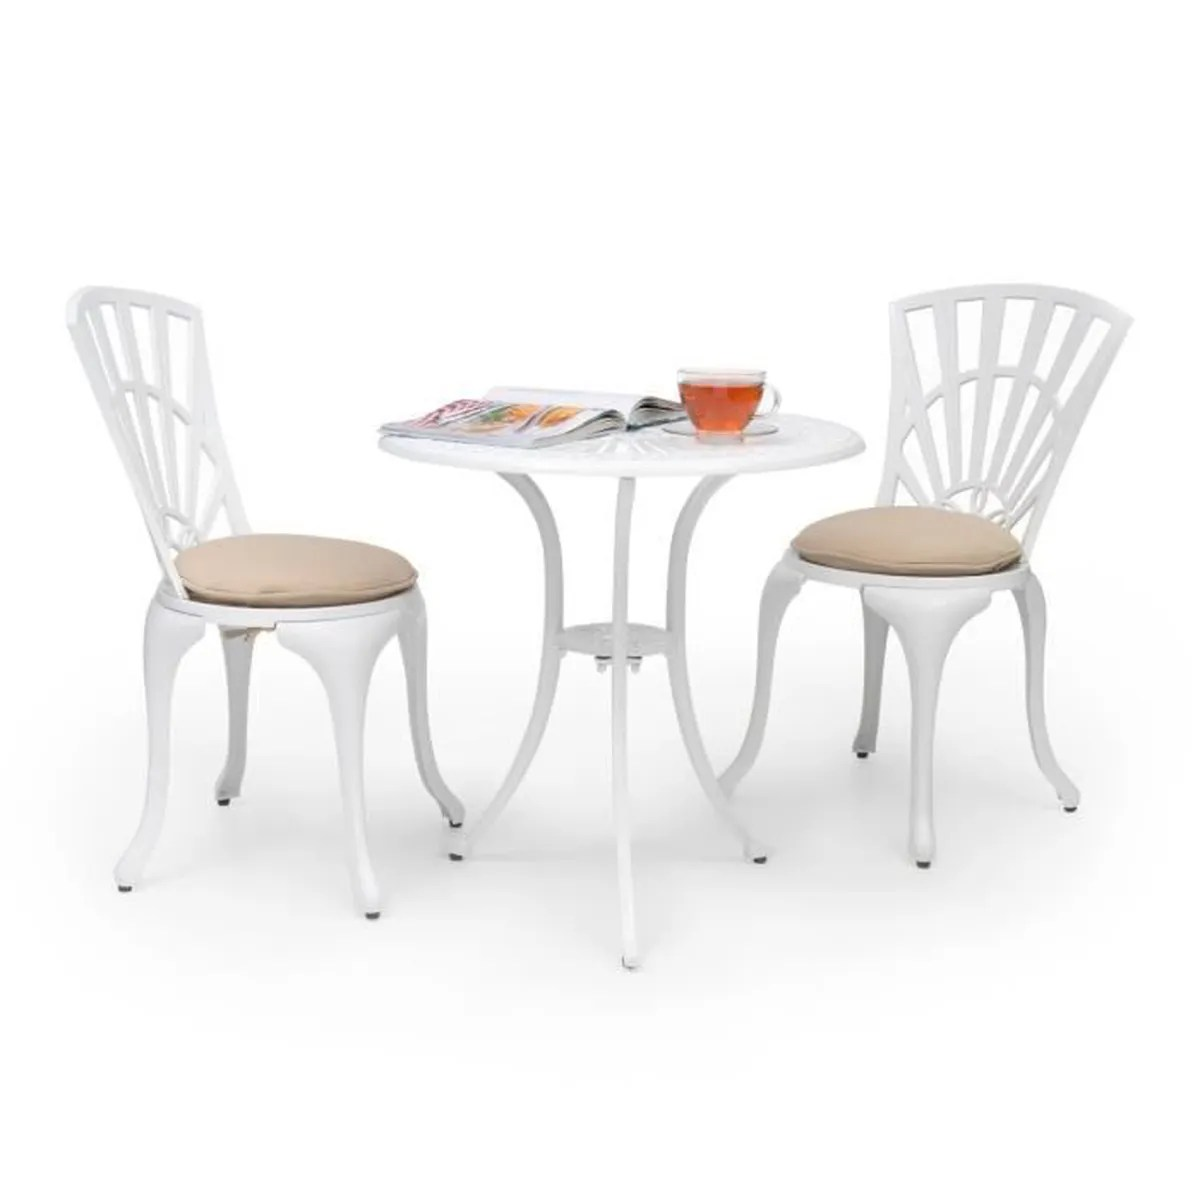 Salon De Jardin Bistrot Aluminium Blumfeldt Valletta Set Bistrot Table 2 Chaises Coussins Alu